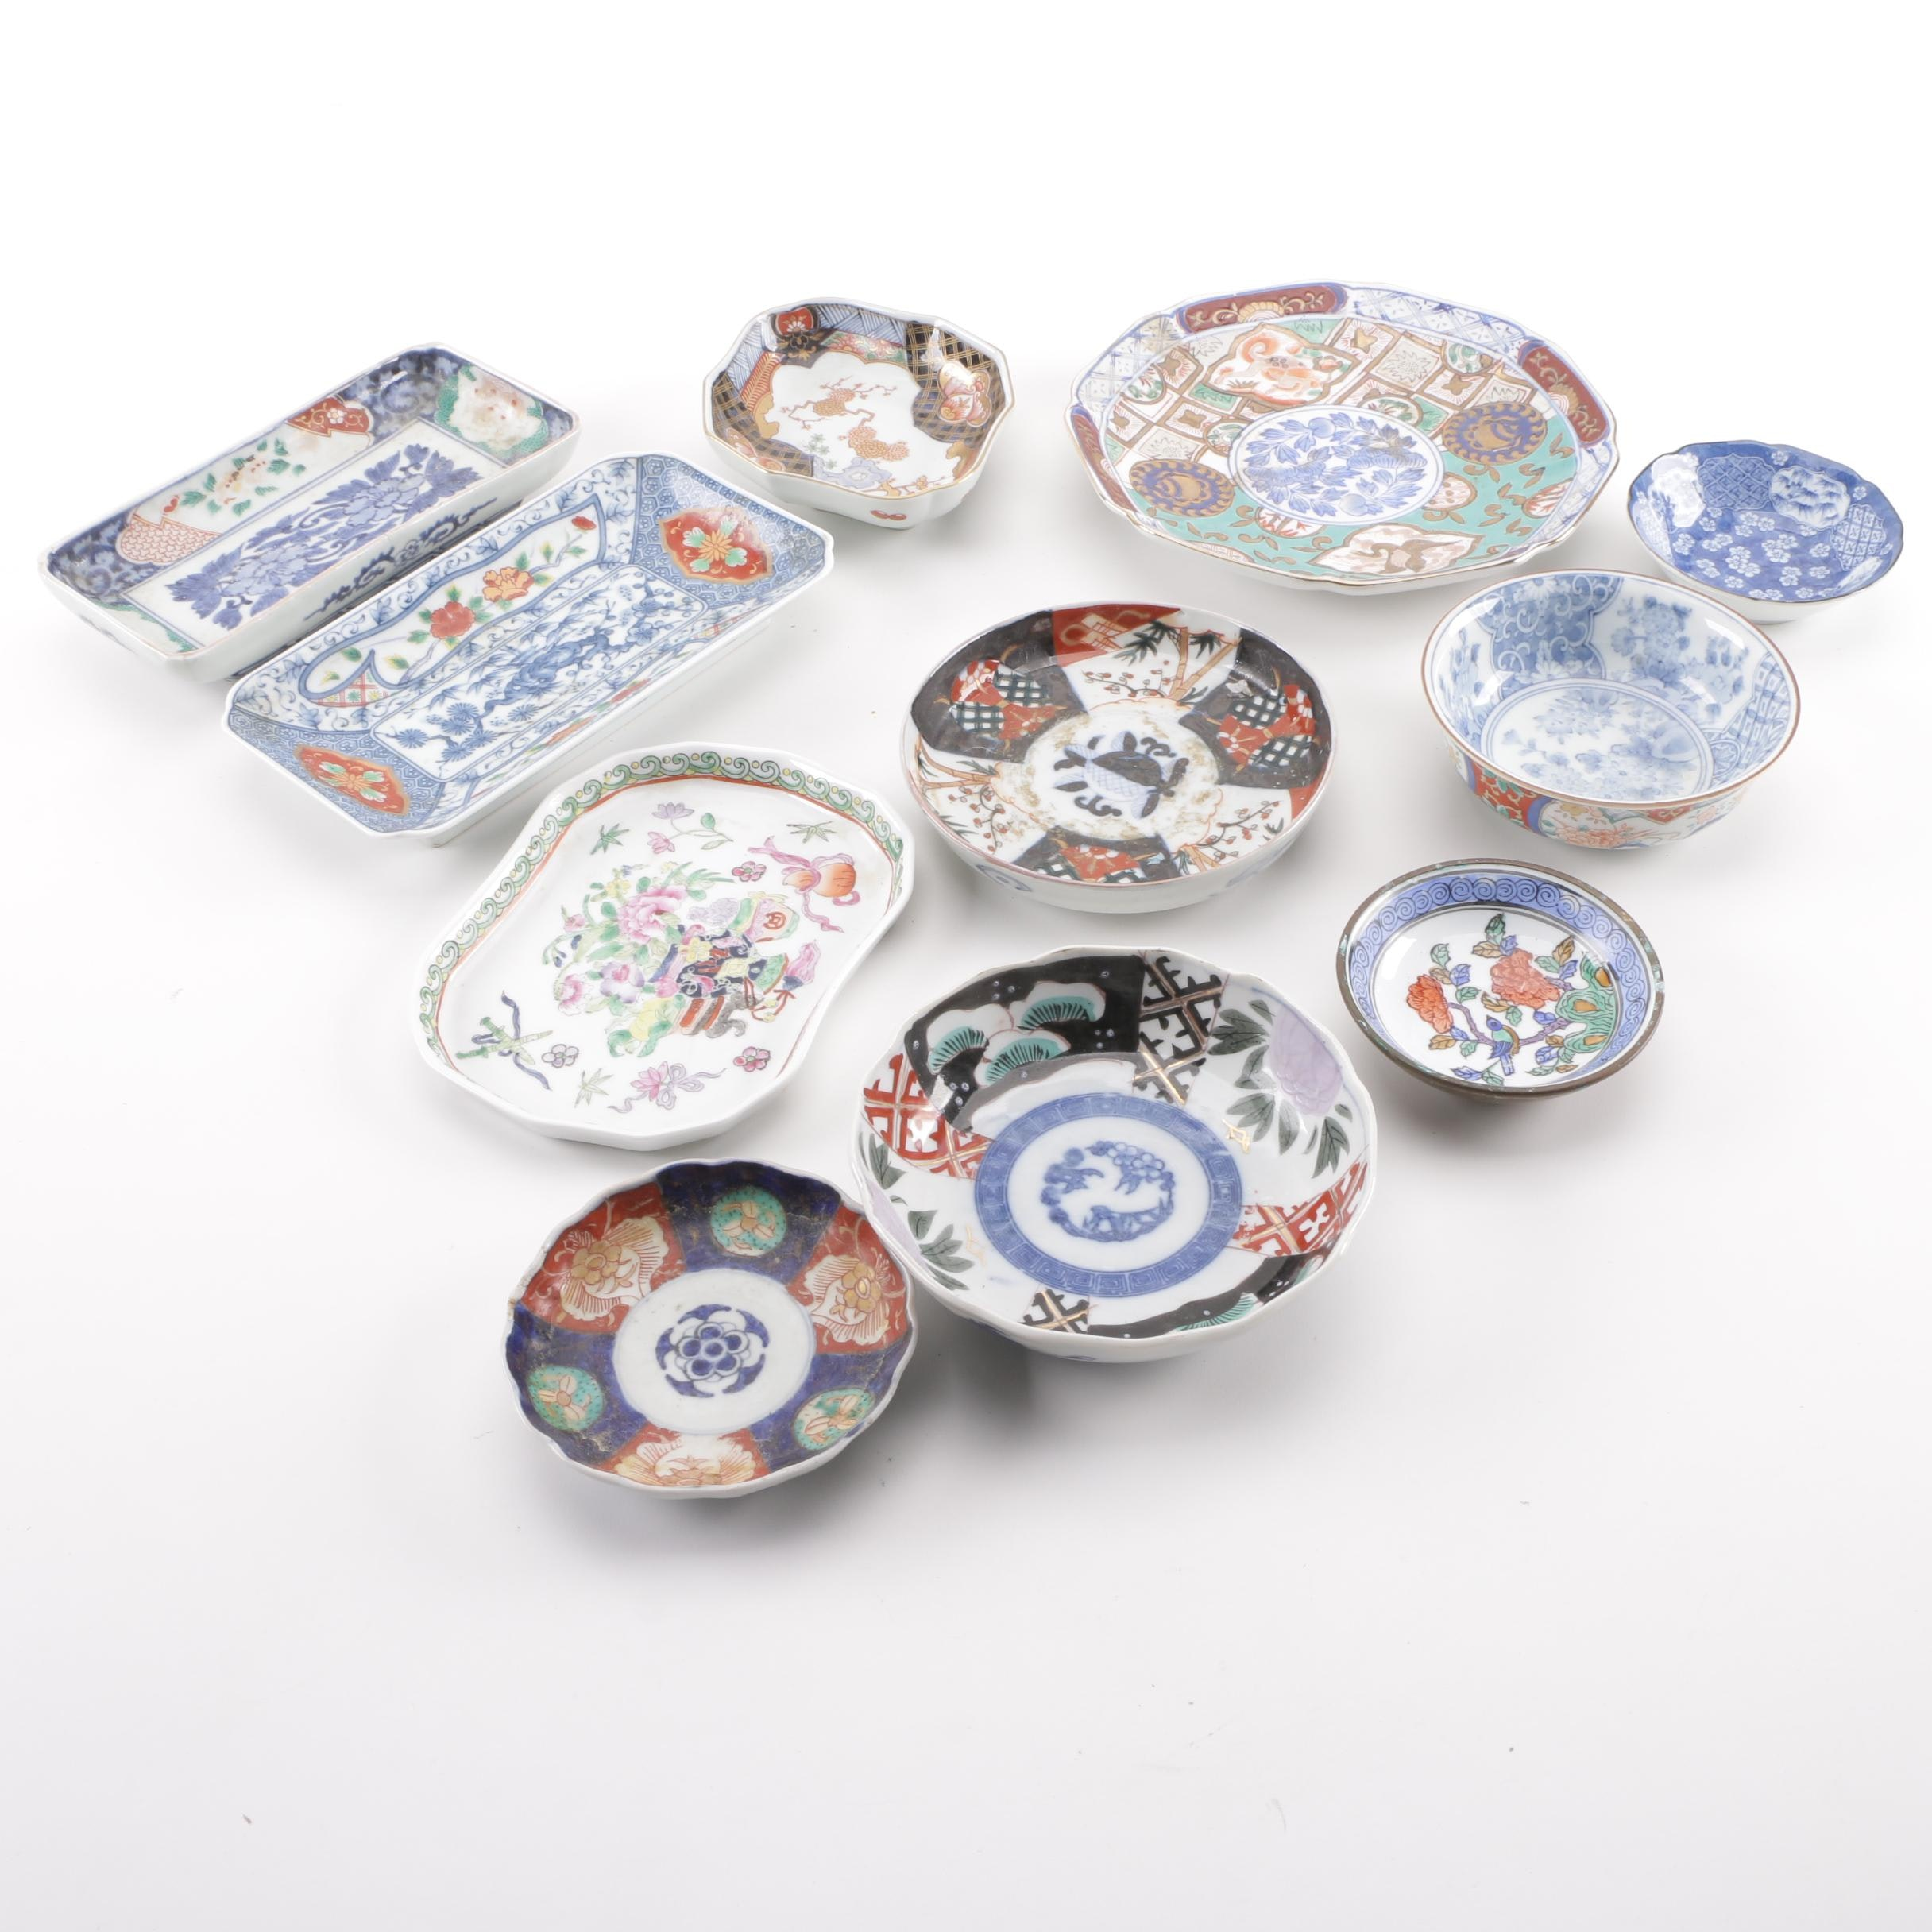 Chinese and Japanese Porcelain Dishes and Plate